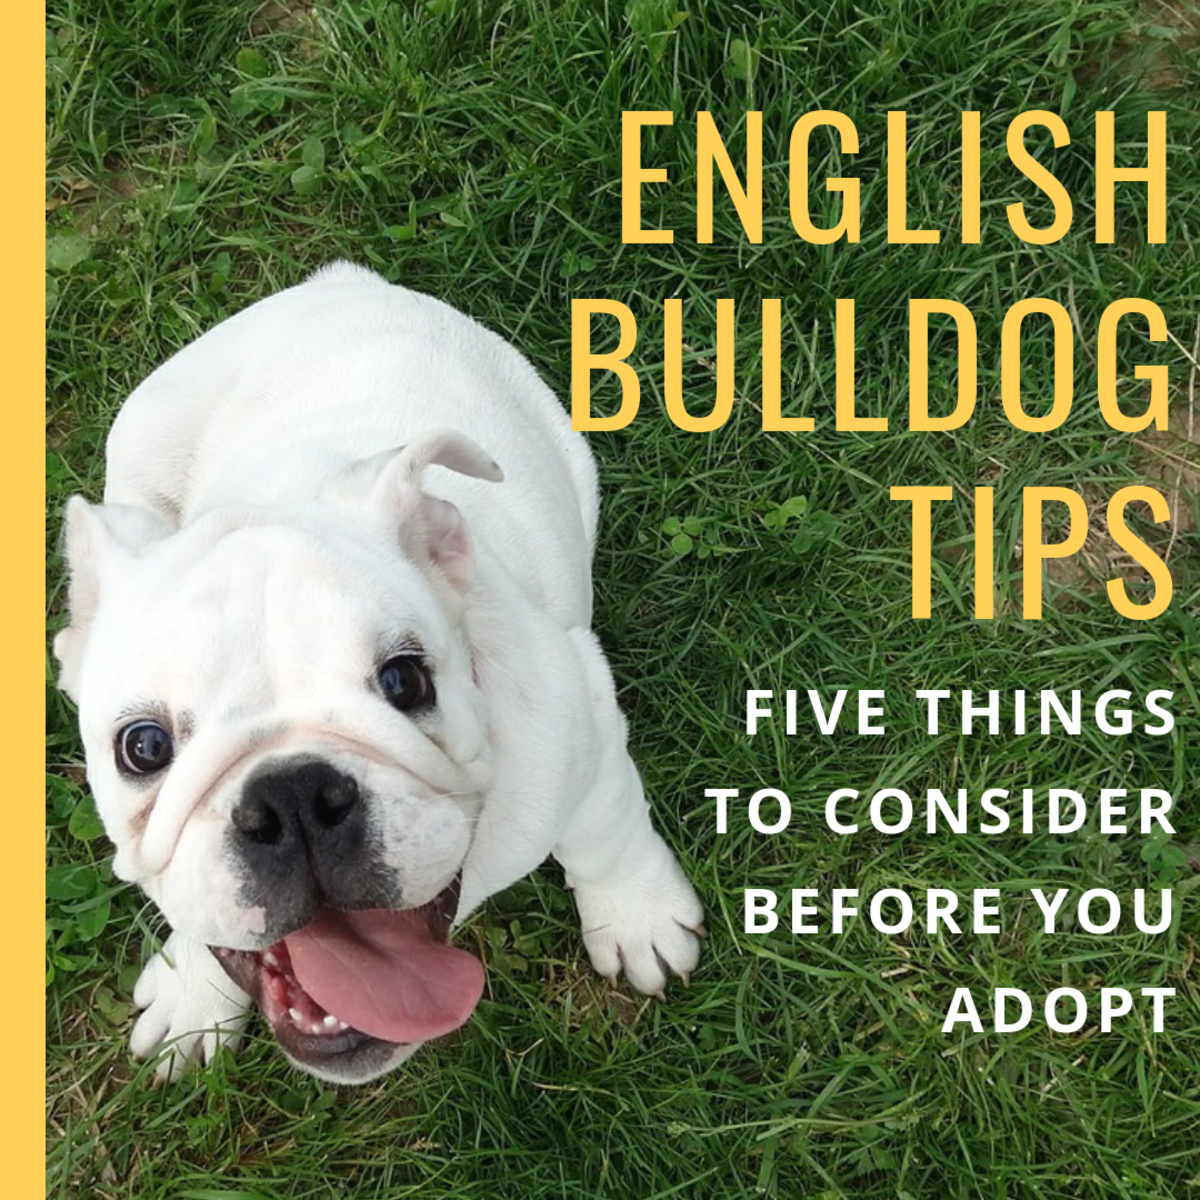 Here are some things to think about before you own an English Bulldog.